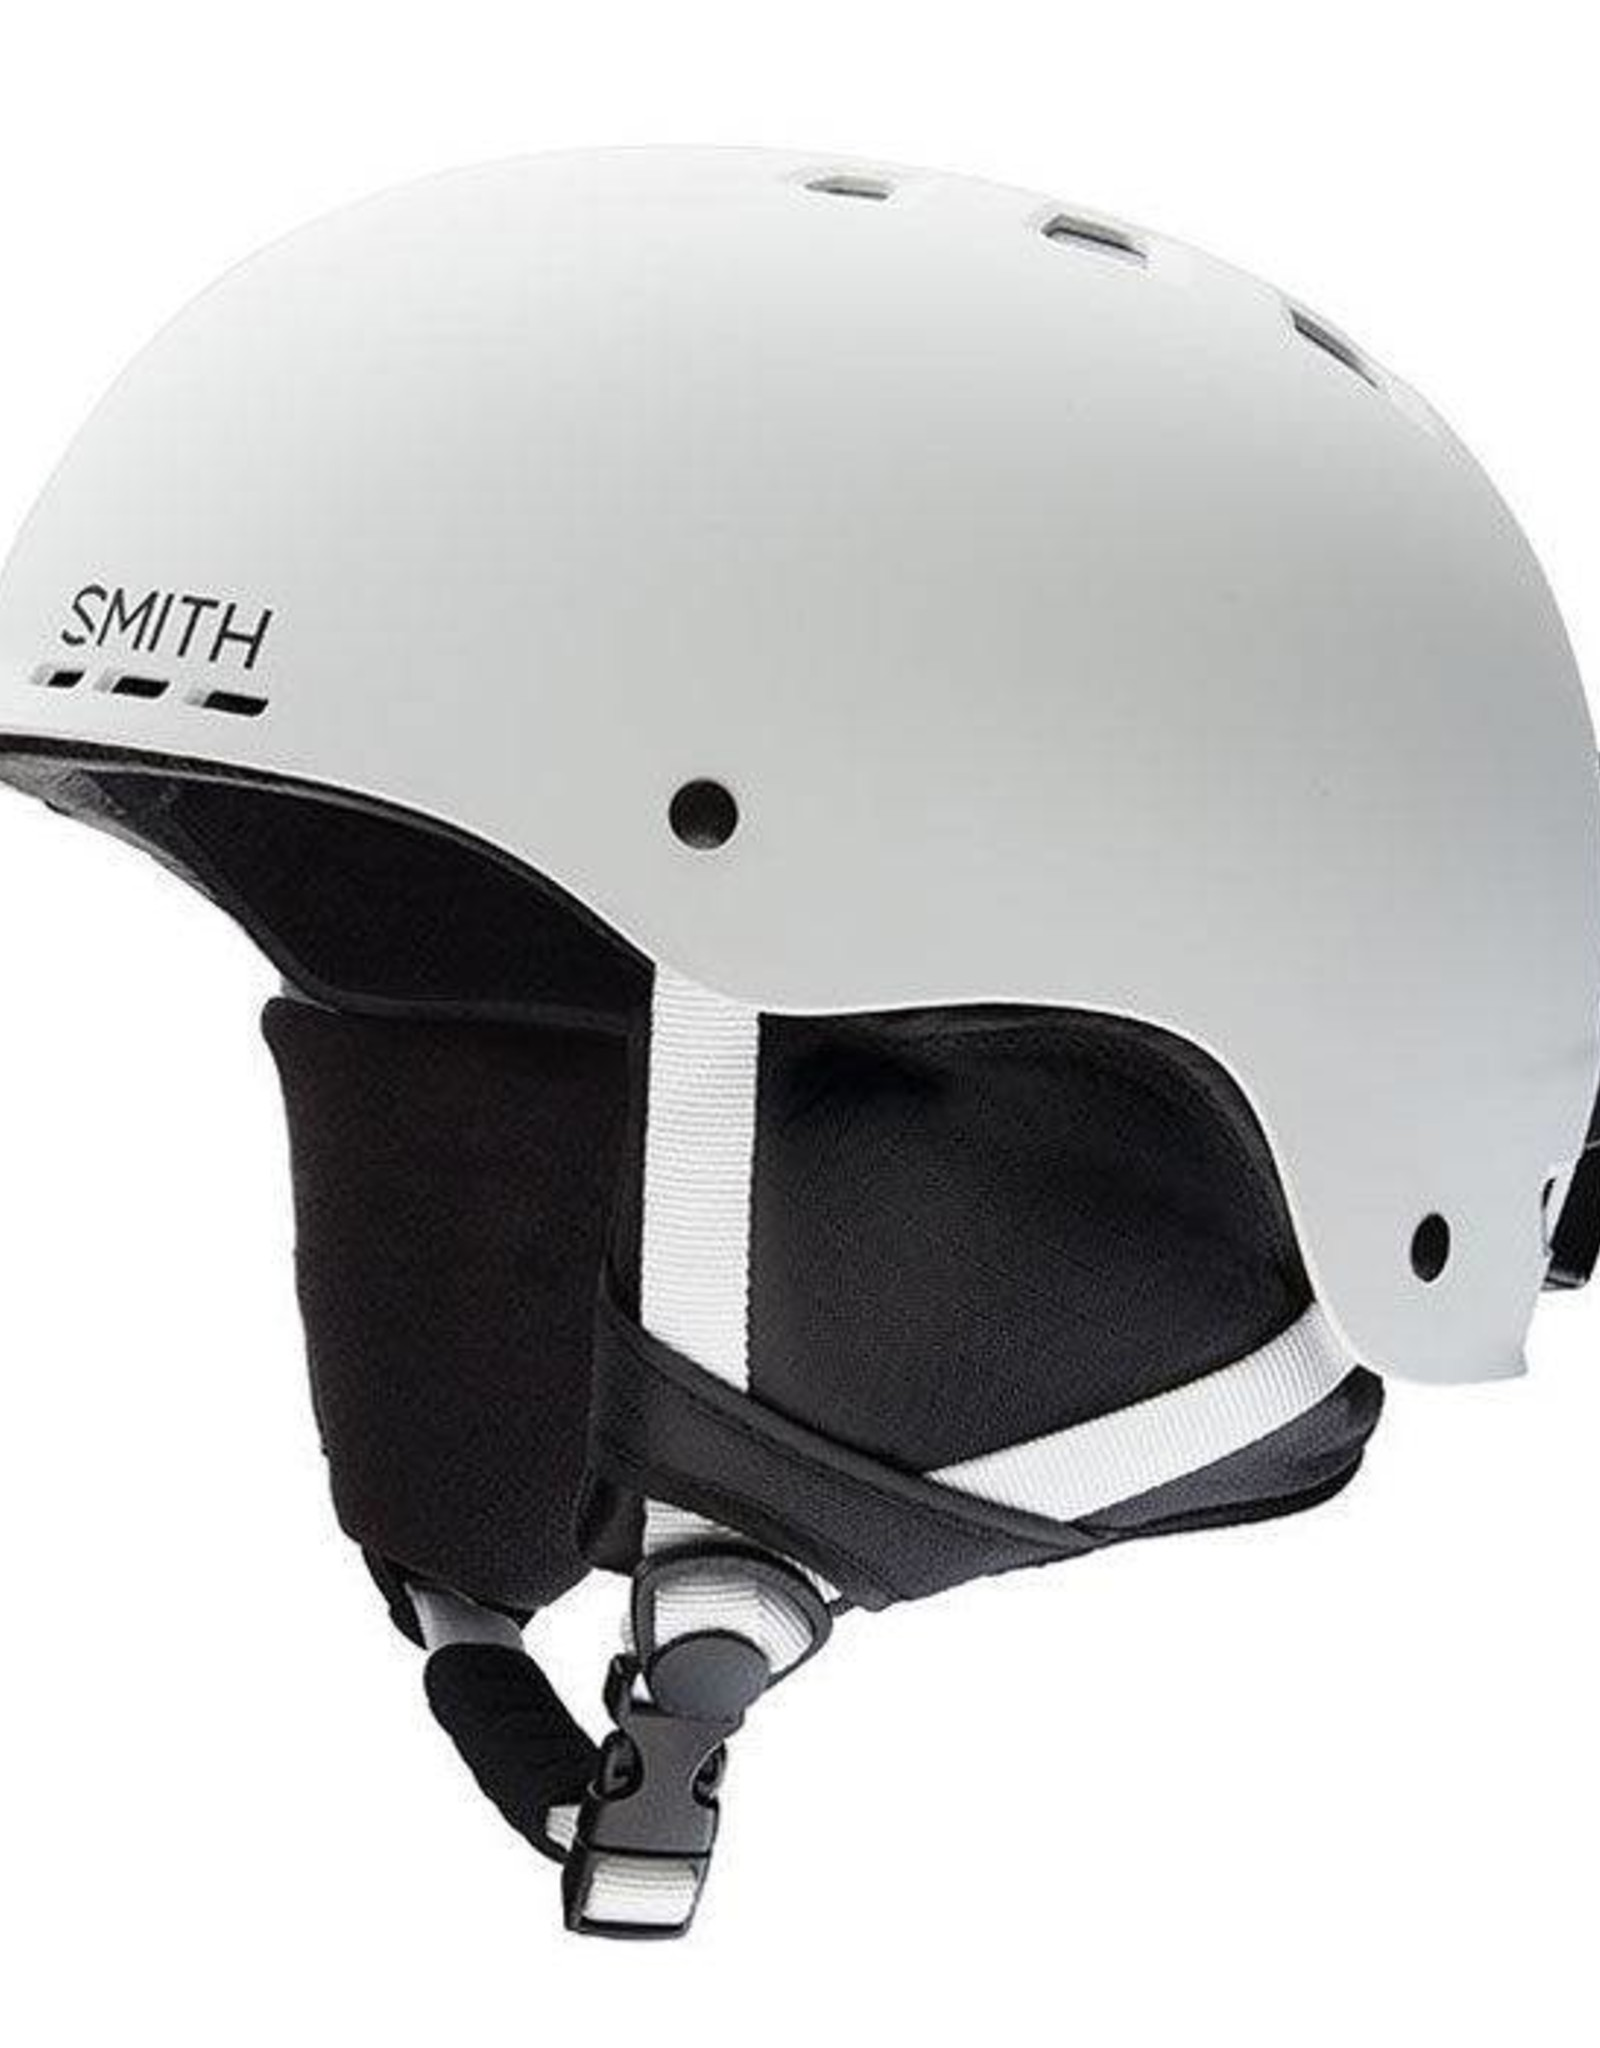 Smith Optics Smith - HOLT (2017) - Matte White -